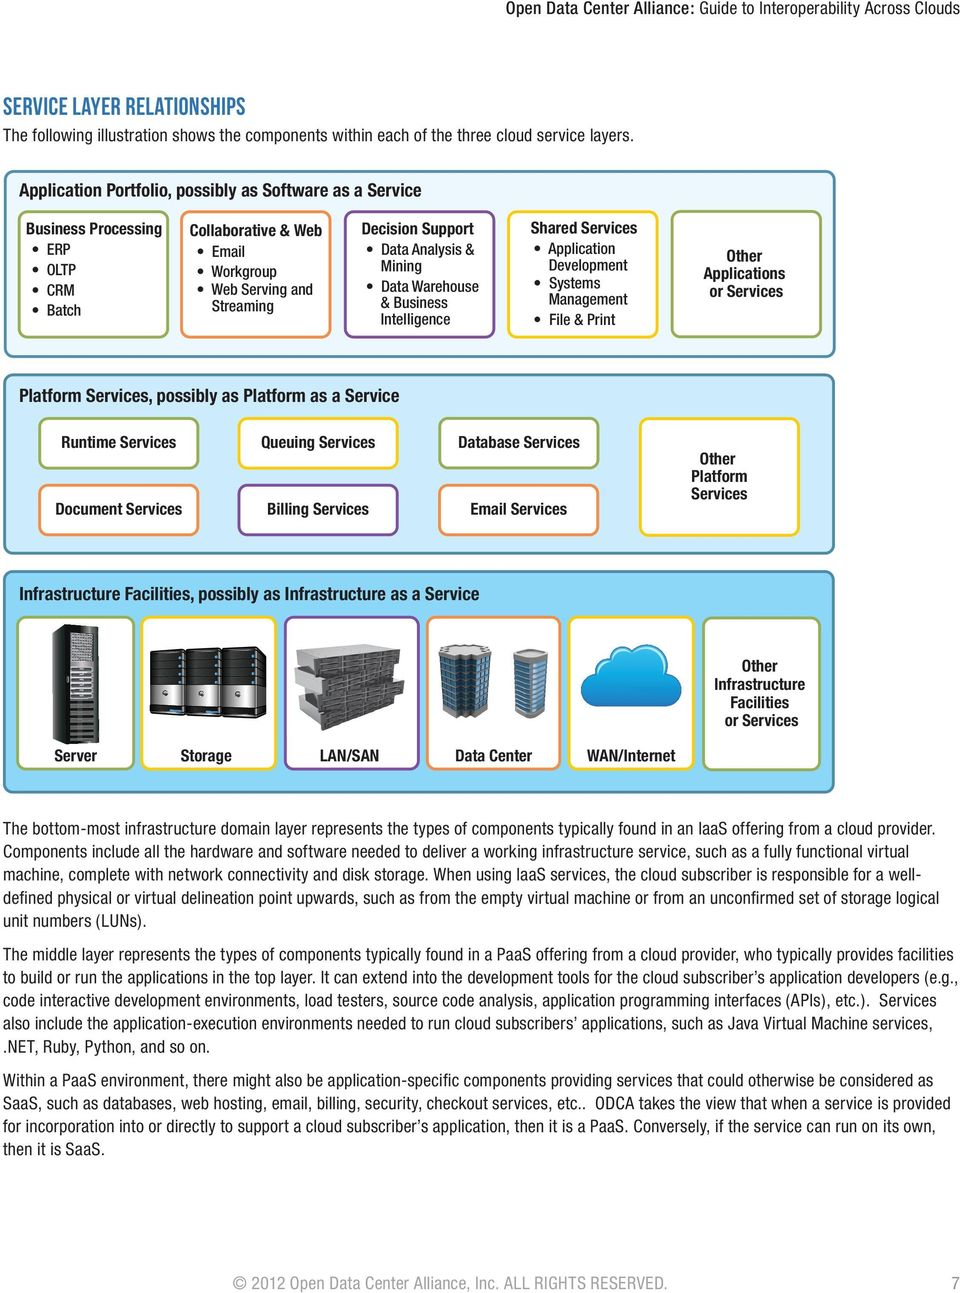 Data Warehouse & Business Intelligence Shared Services Application Development Systems Management File & Print Other Applications or Services Platform Services, possibly as Platform as a Service